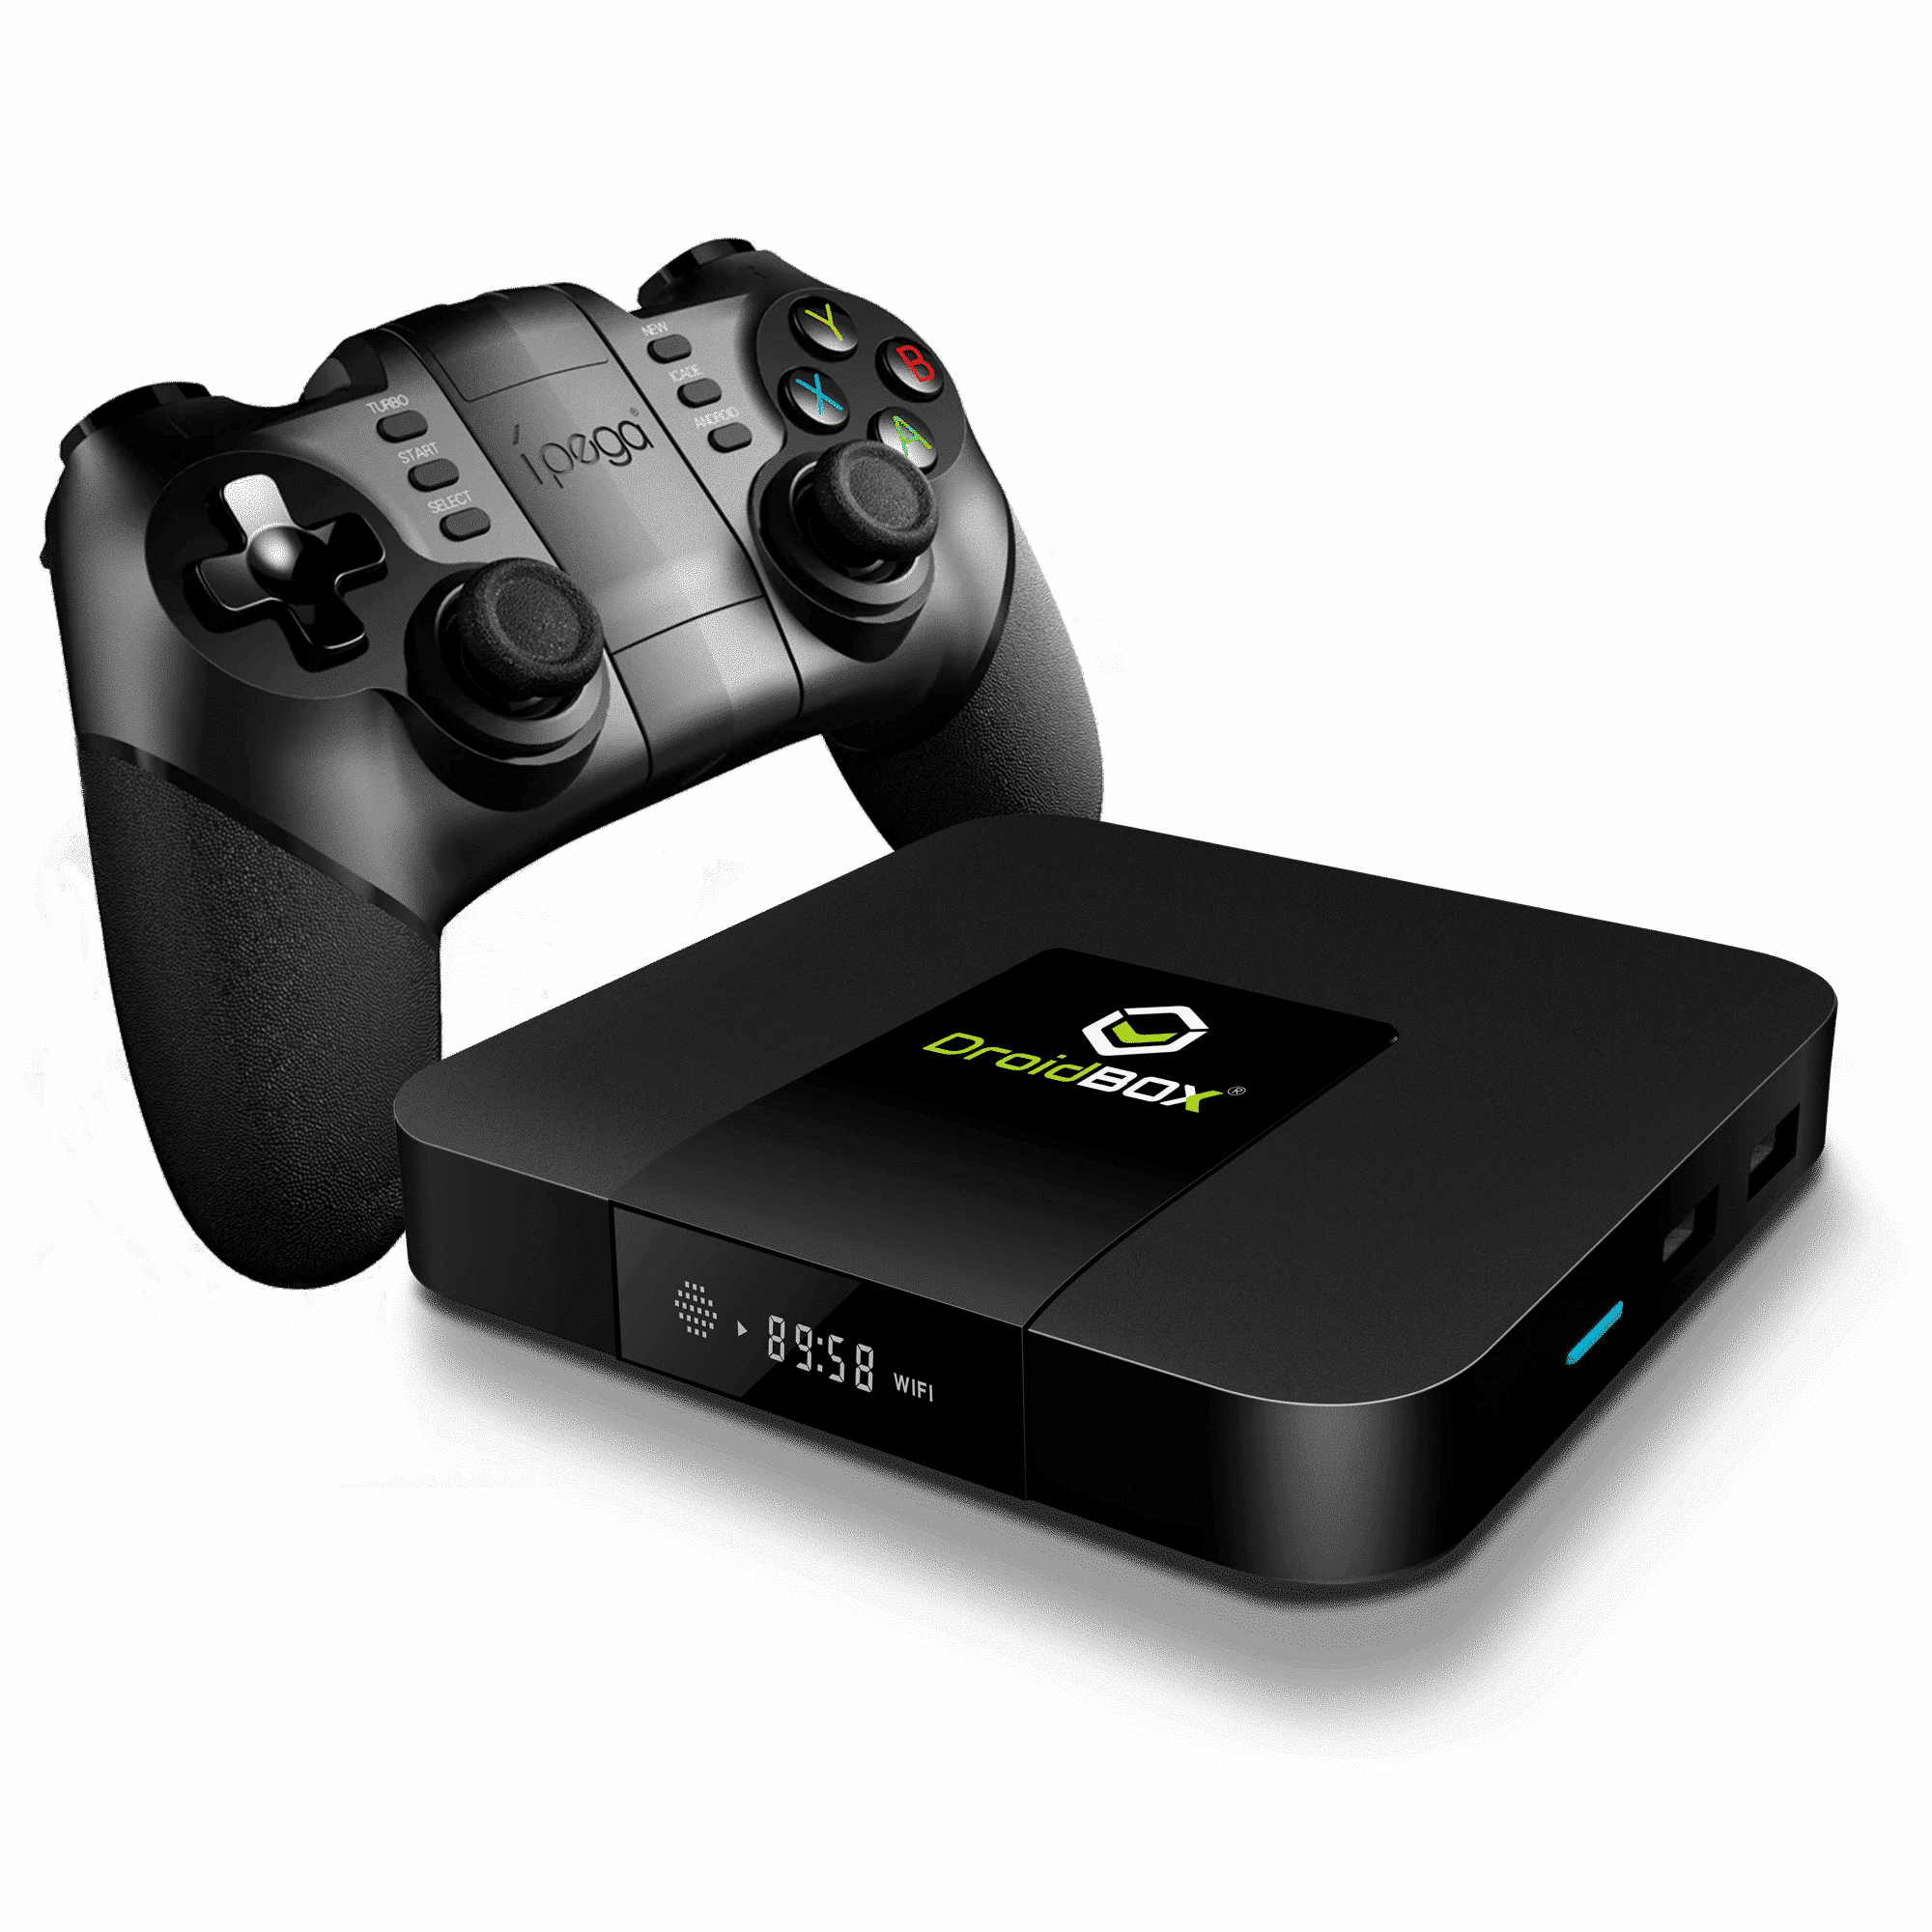 iMXQpro Mini Retro-Gaming Edition with the iPega 9076 Wireless Gamepad